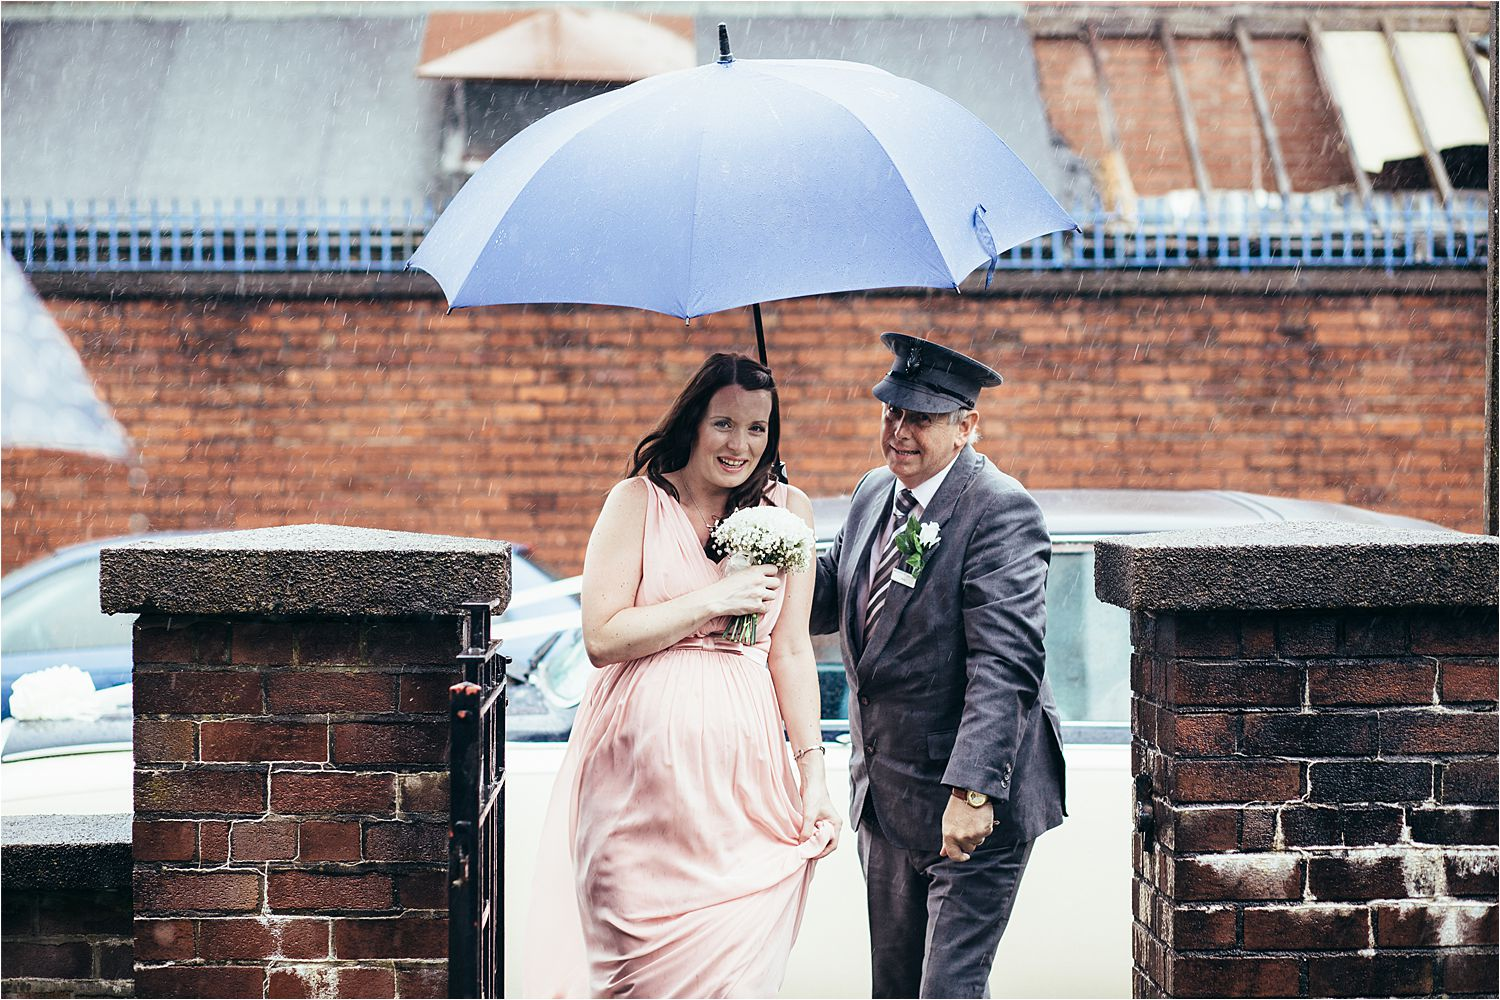 Chauffeur with umbrella shields bridesmaid from heavy rain as she arrives at church